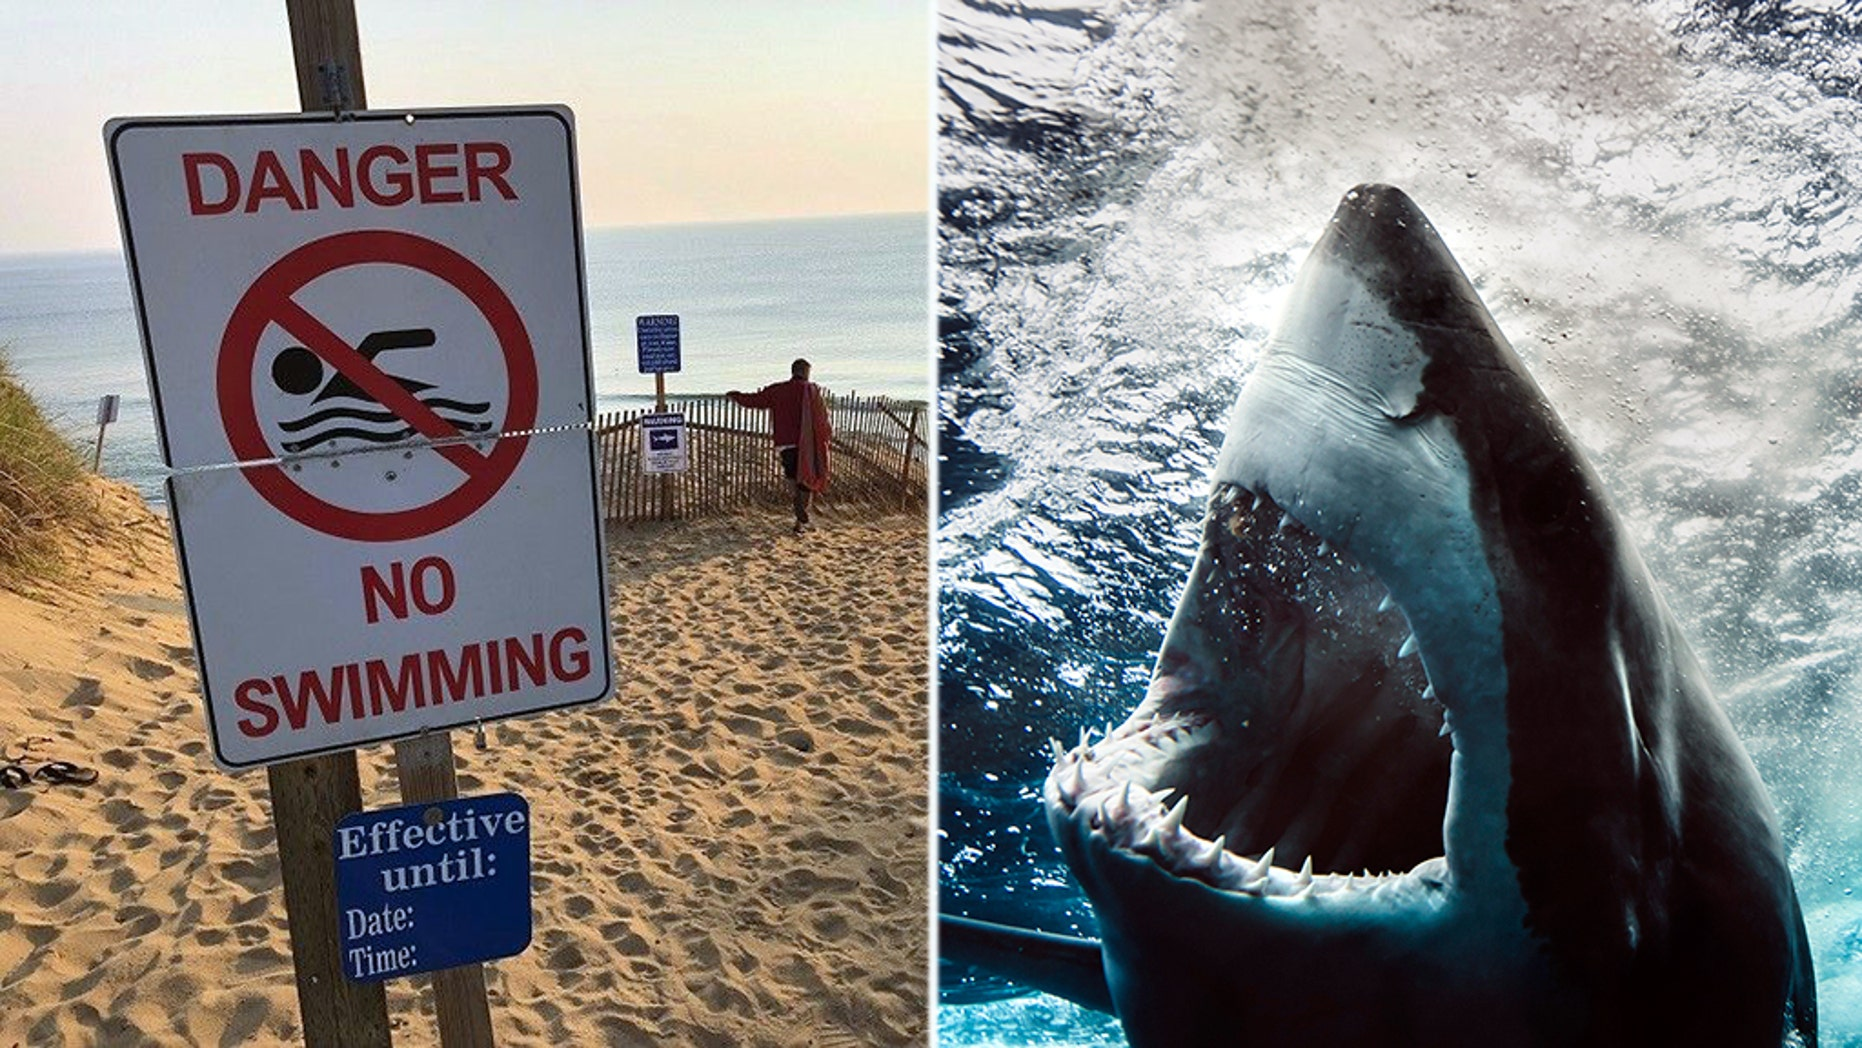 William Lytton, 61, of Scarsdale, NY, was bitten by a shark at a Cape Cod beach on Wednesday, August 16 2018.